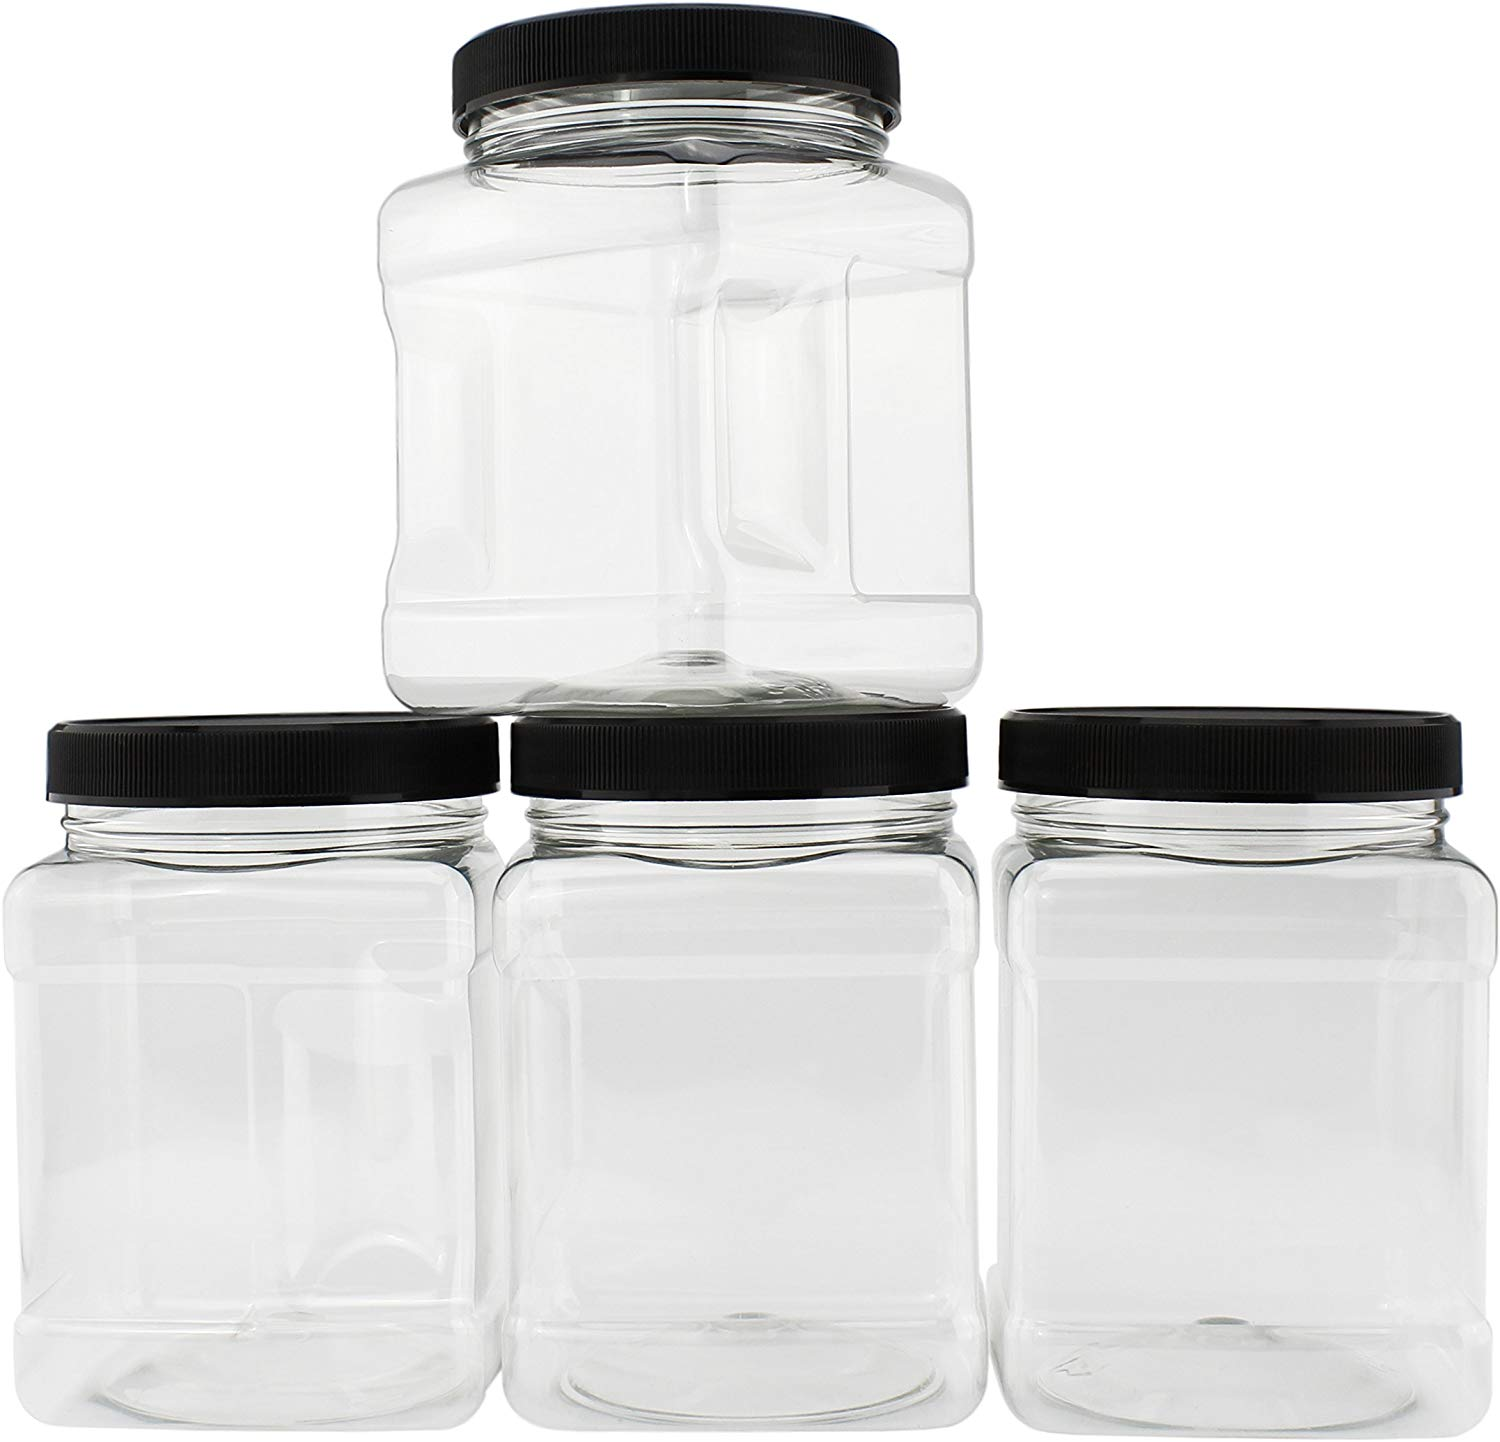 32-Ounce Square Plastic Jars (4-Pack)